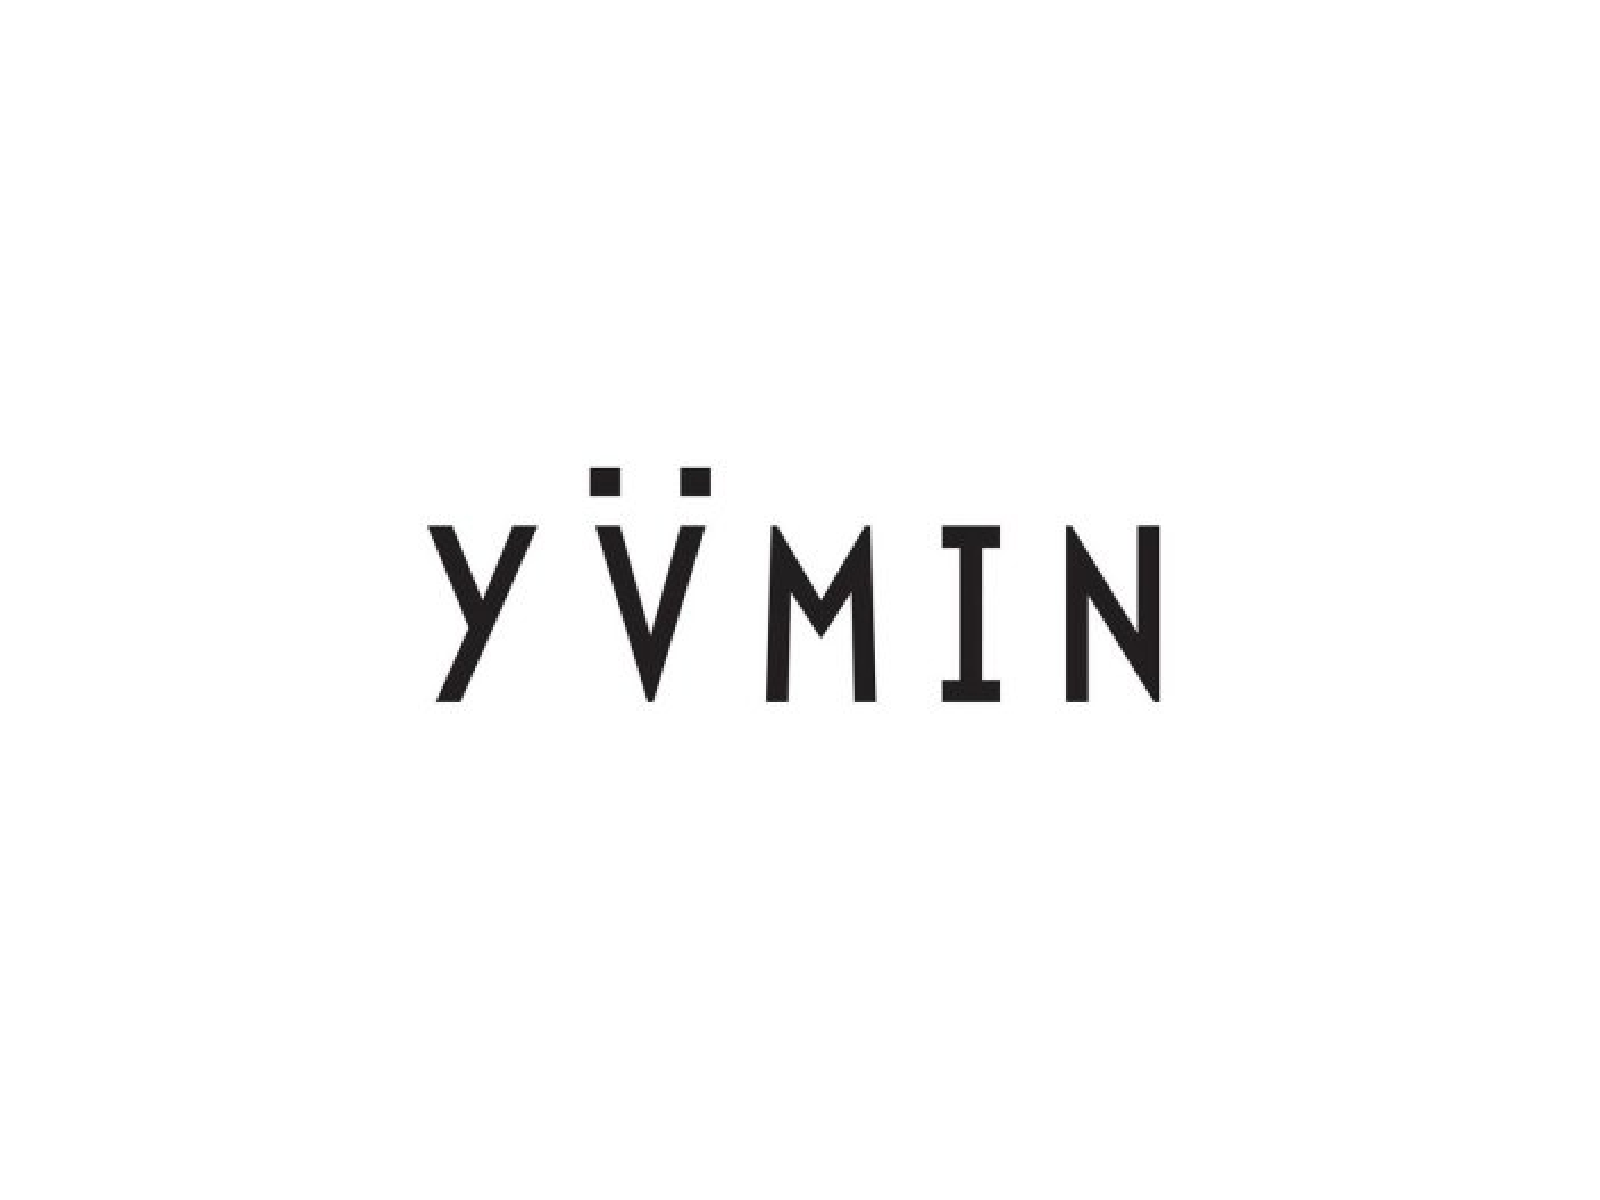 image of YVMIN